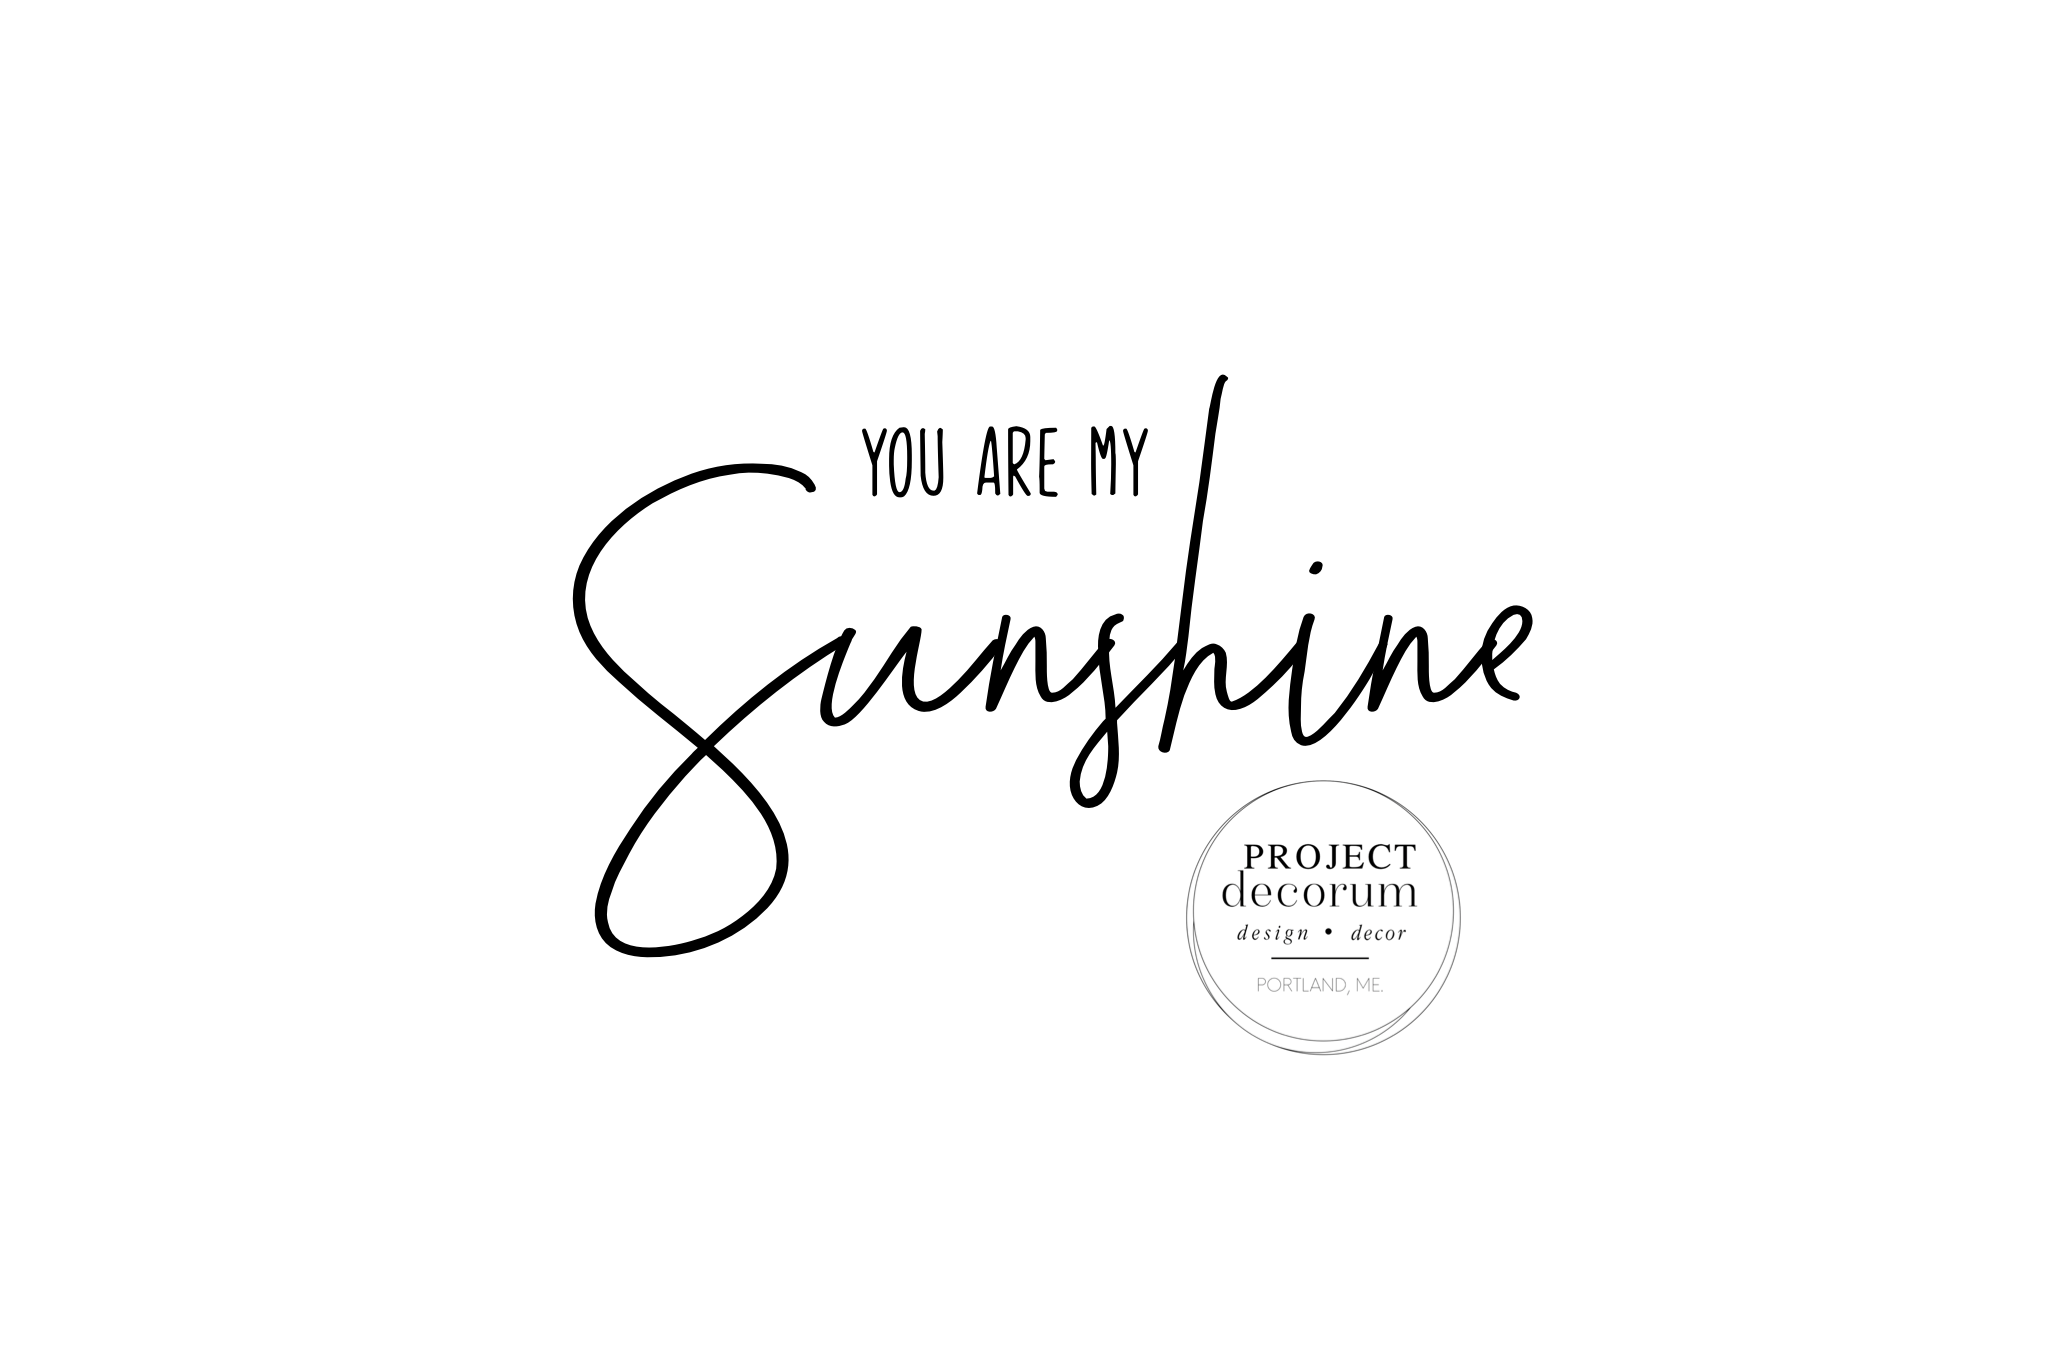 Download Free You Are My Sunshine Graphic By Nicola Apon Creative Fabrica for Cricut Explore, Silhouette and other cutting machines.